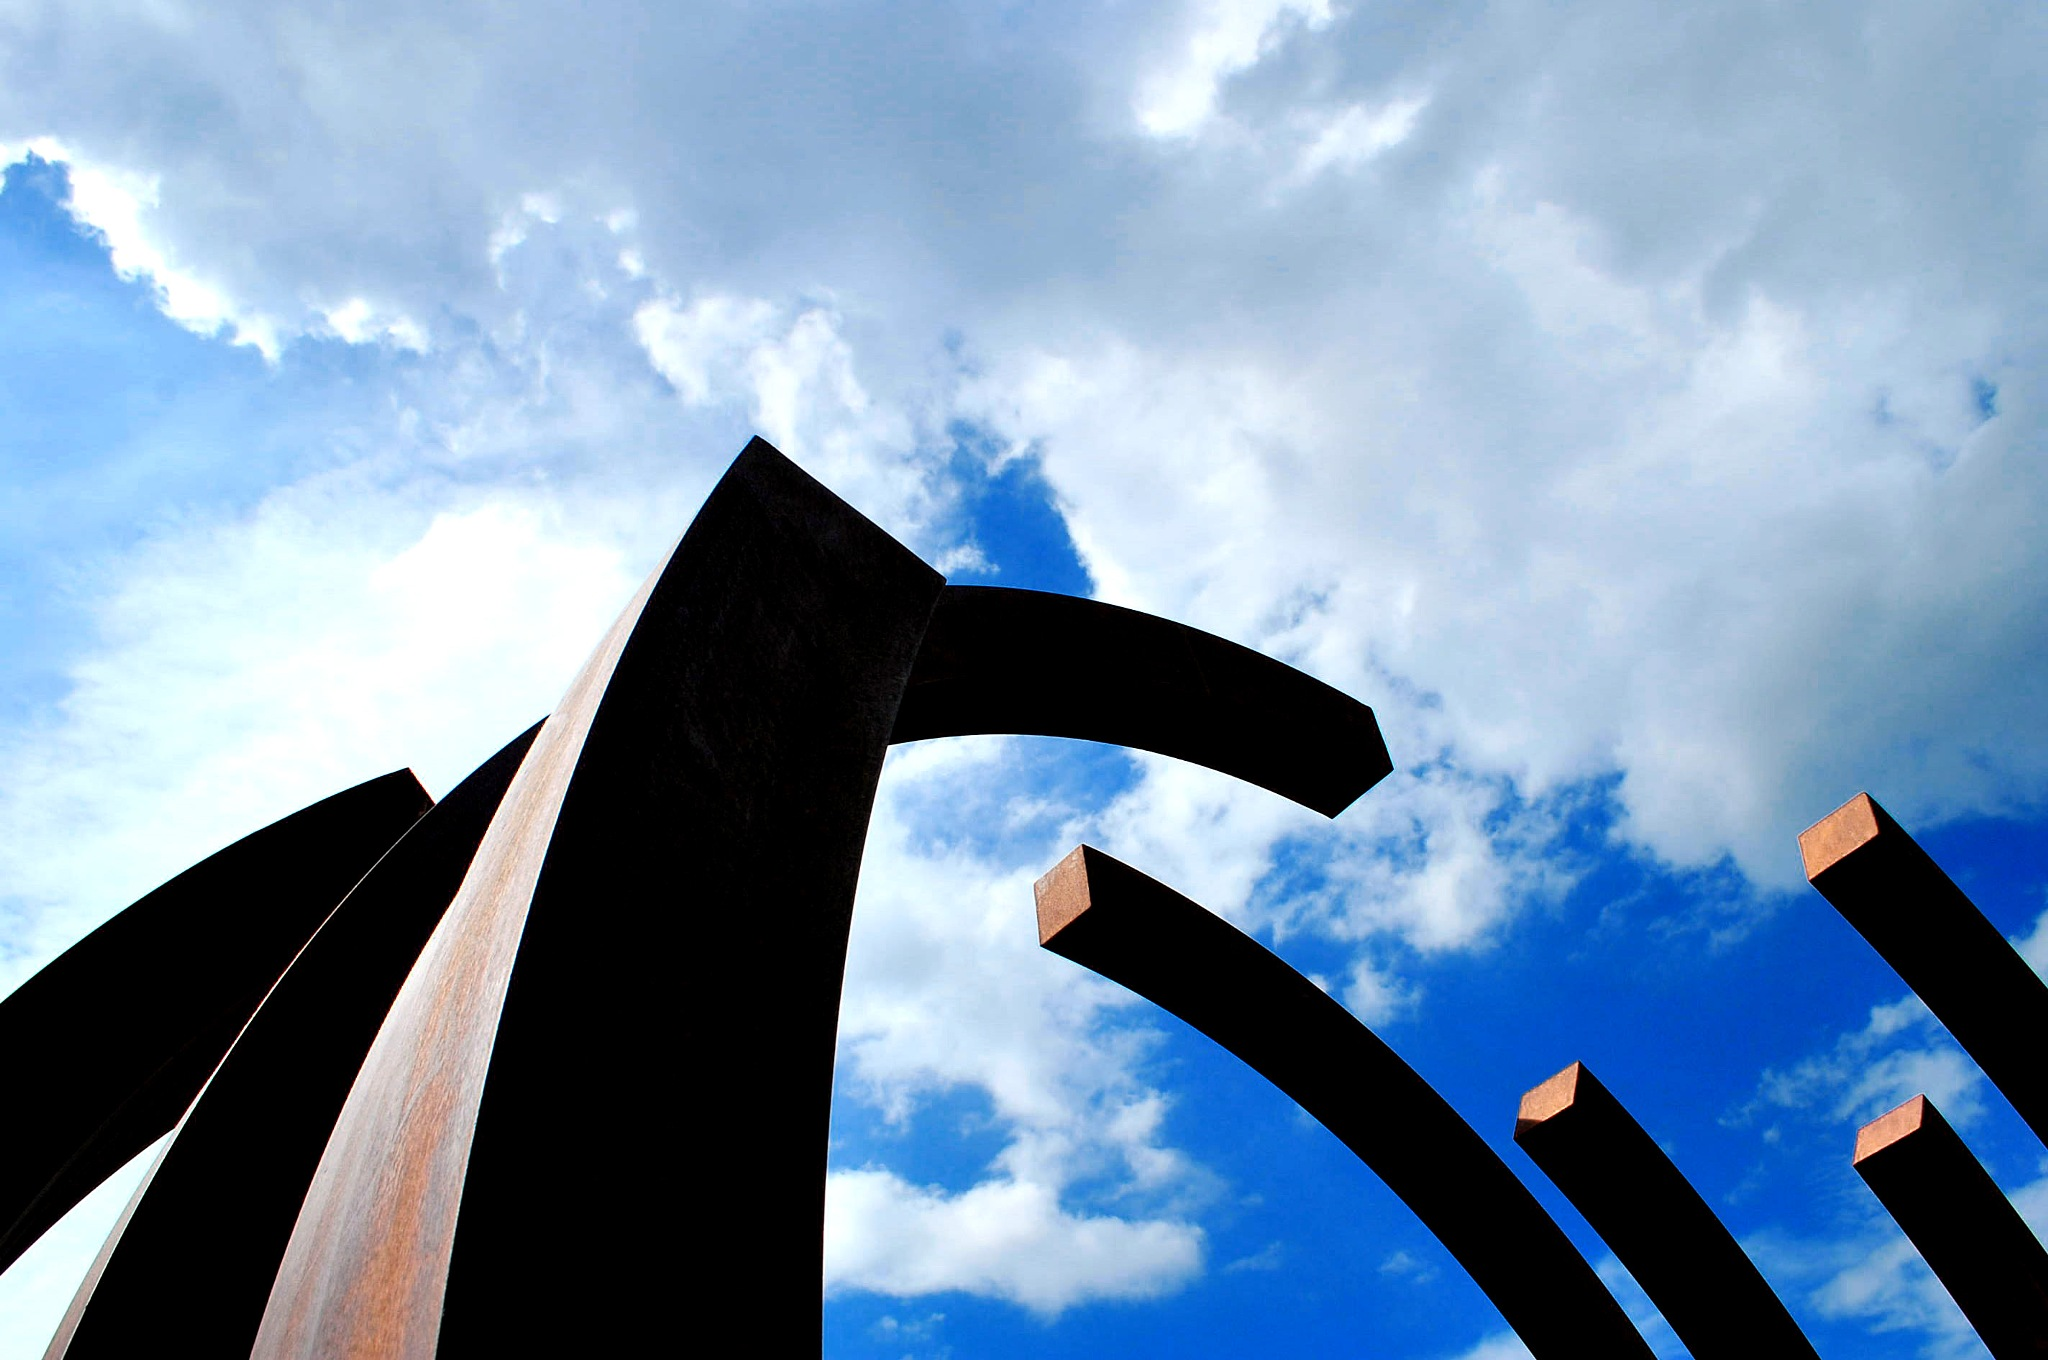 Structures with blue and white by liwesta